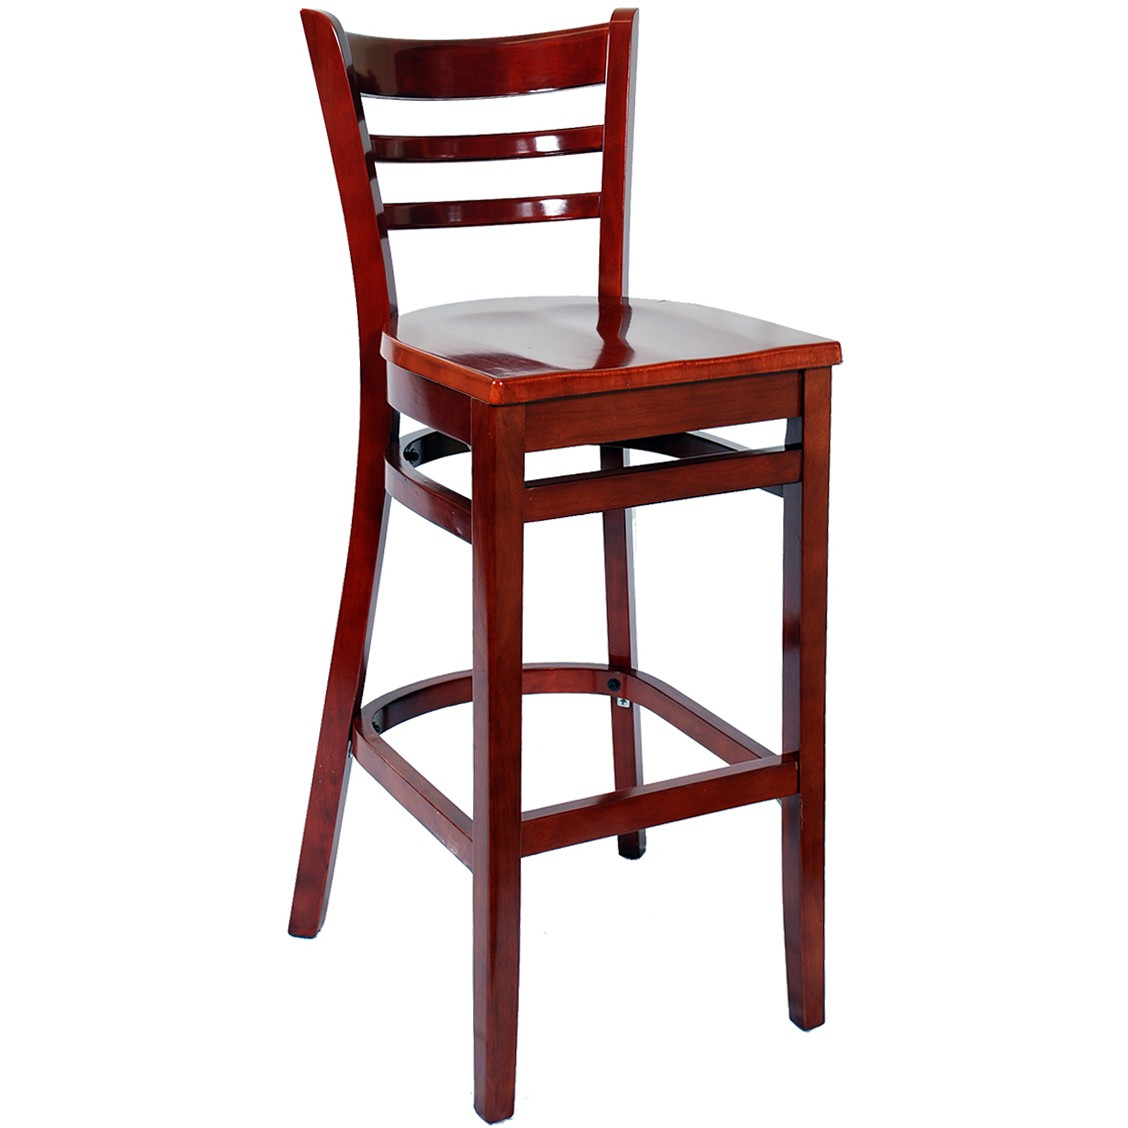 Wood restaurant furniture -  Ladder Back Bar Stool Mahogany Finish With A Wood Seat